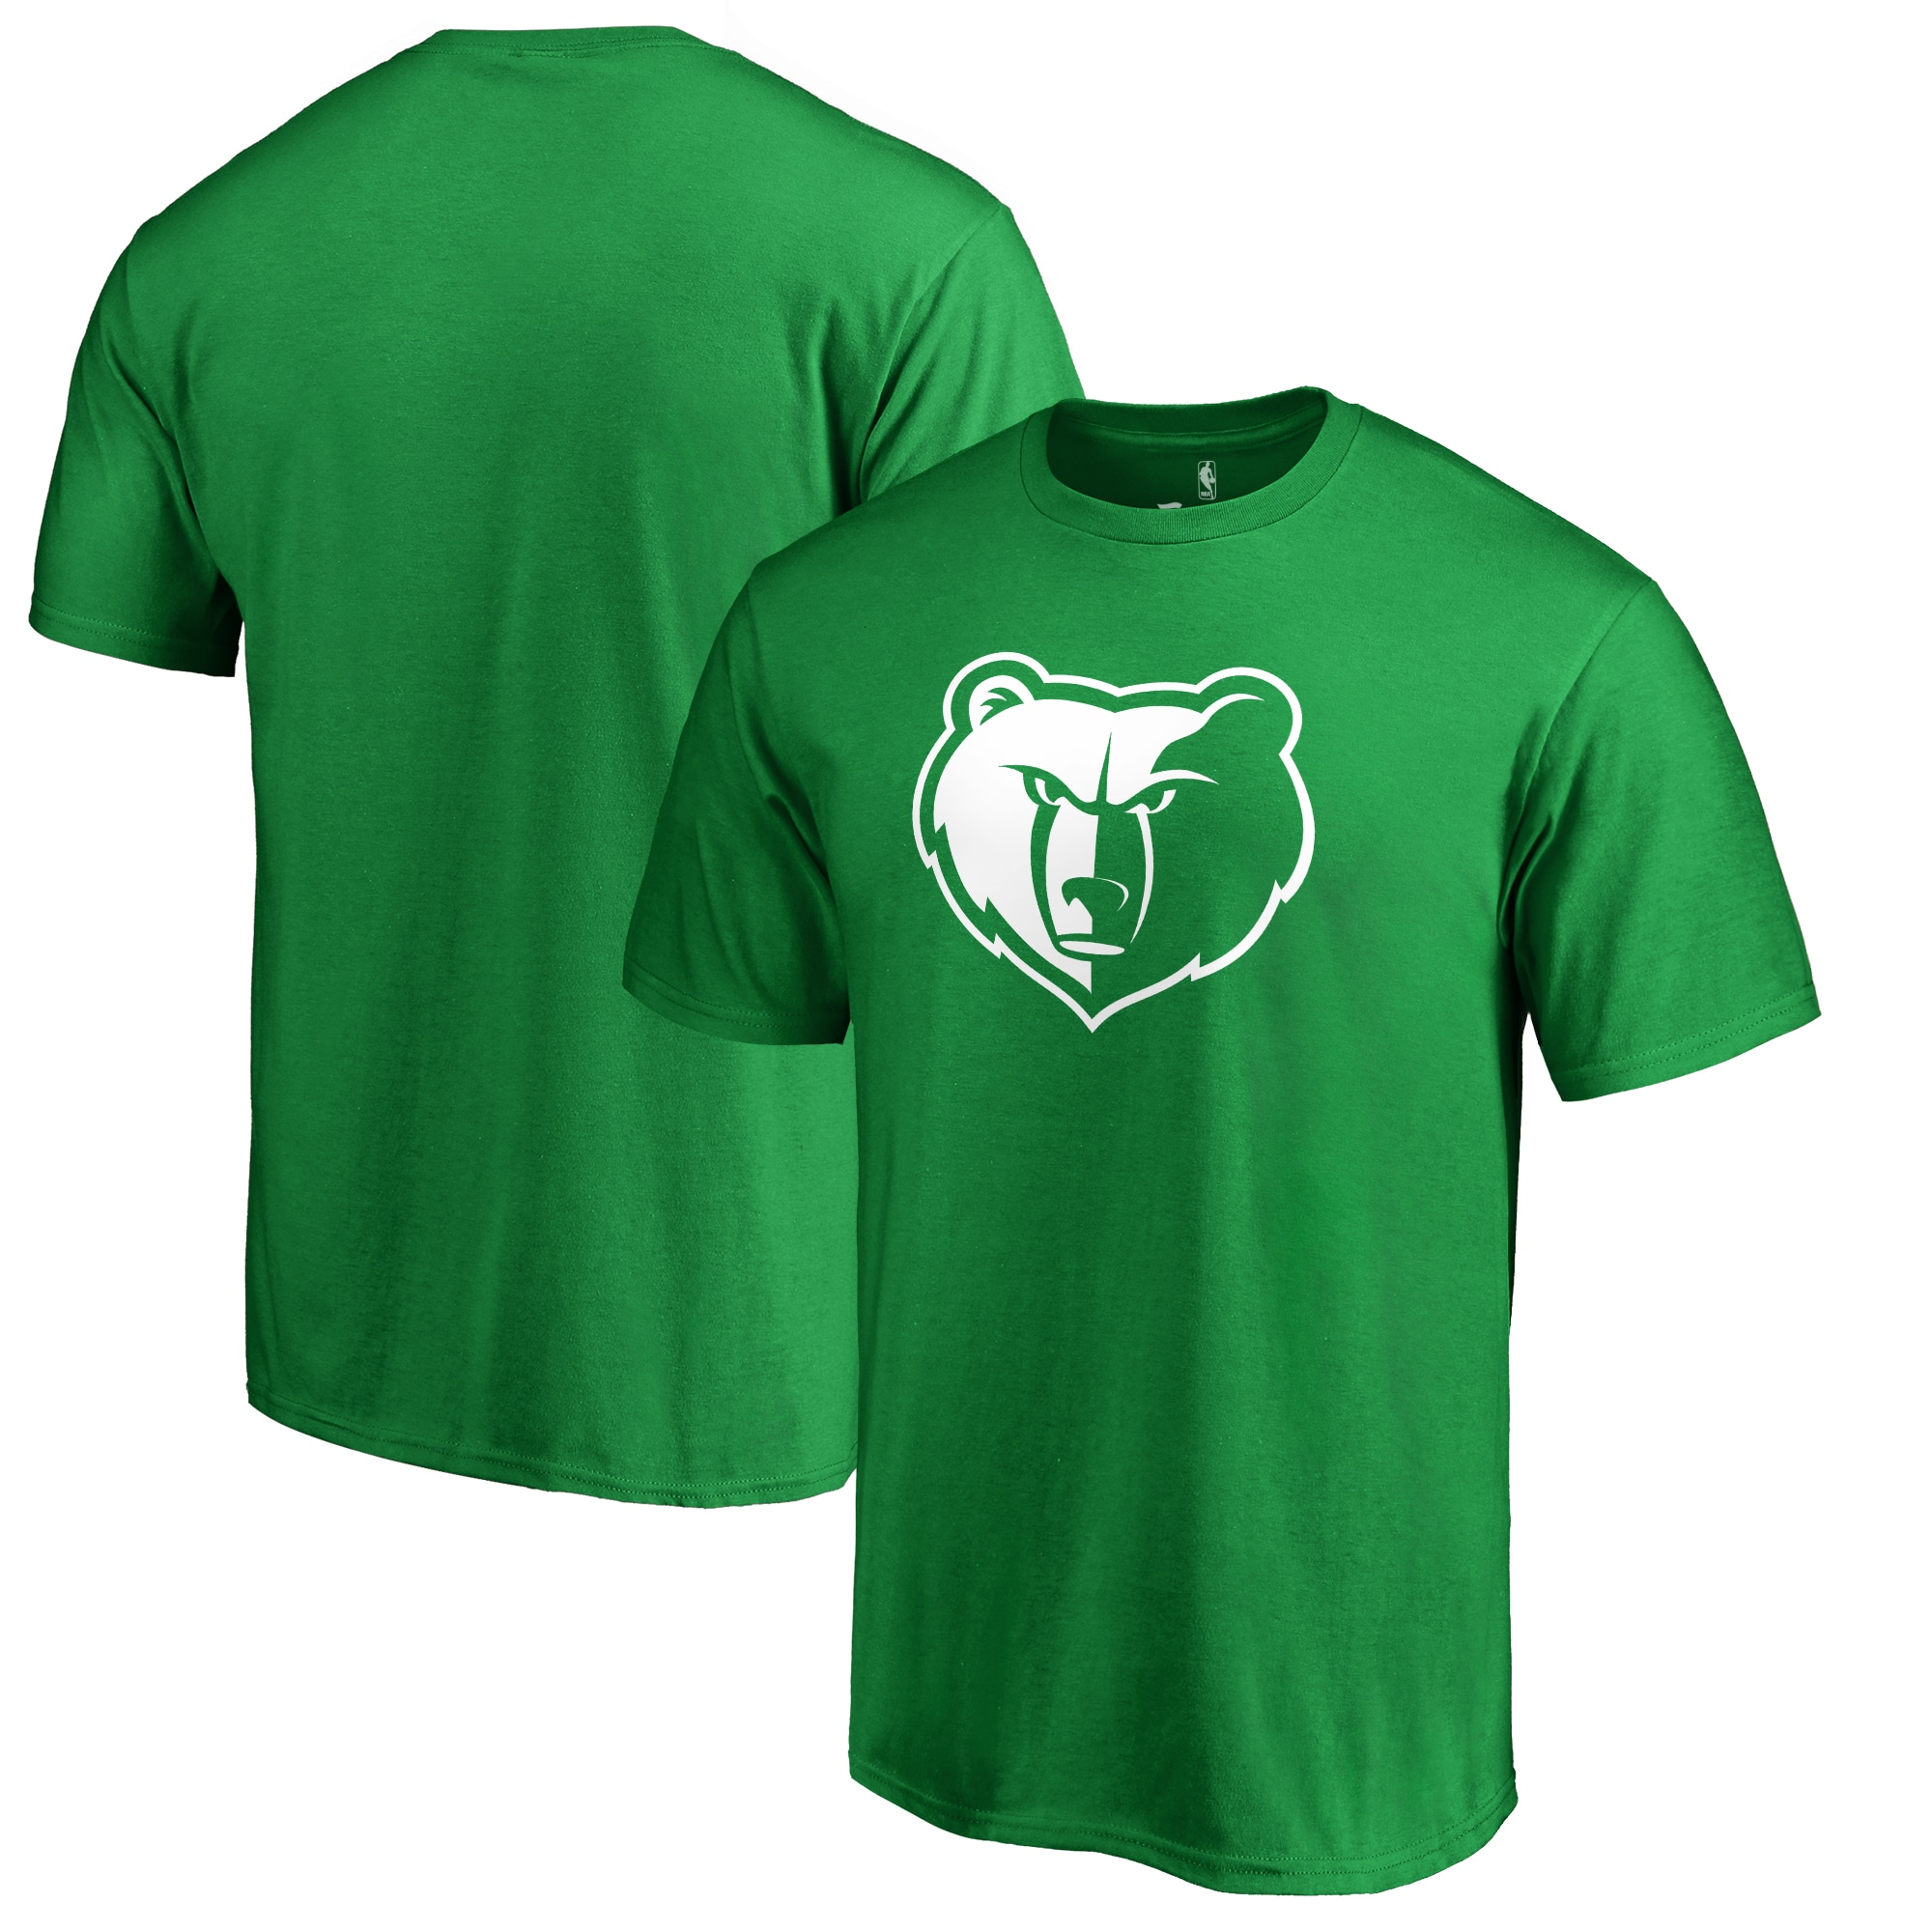 Memphis Grizzlies Fanatics Branded St. Patrick's Day White Logo T-Shirt - Green